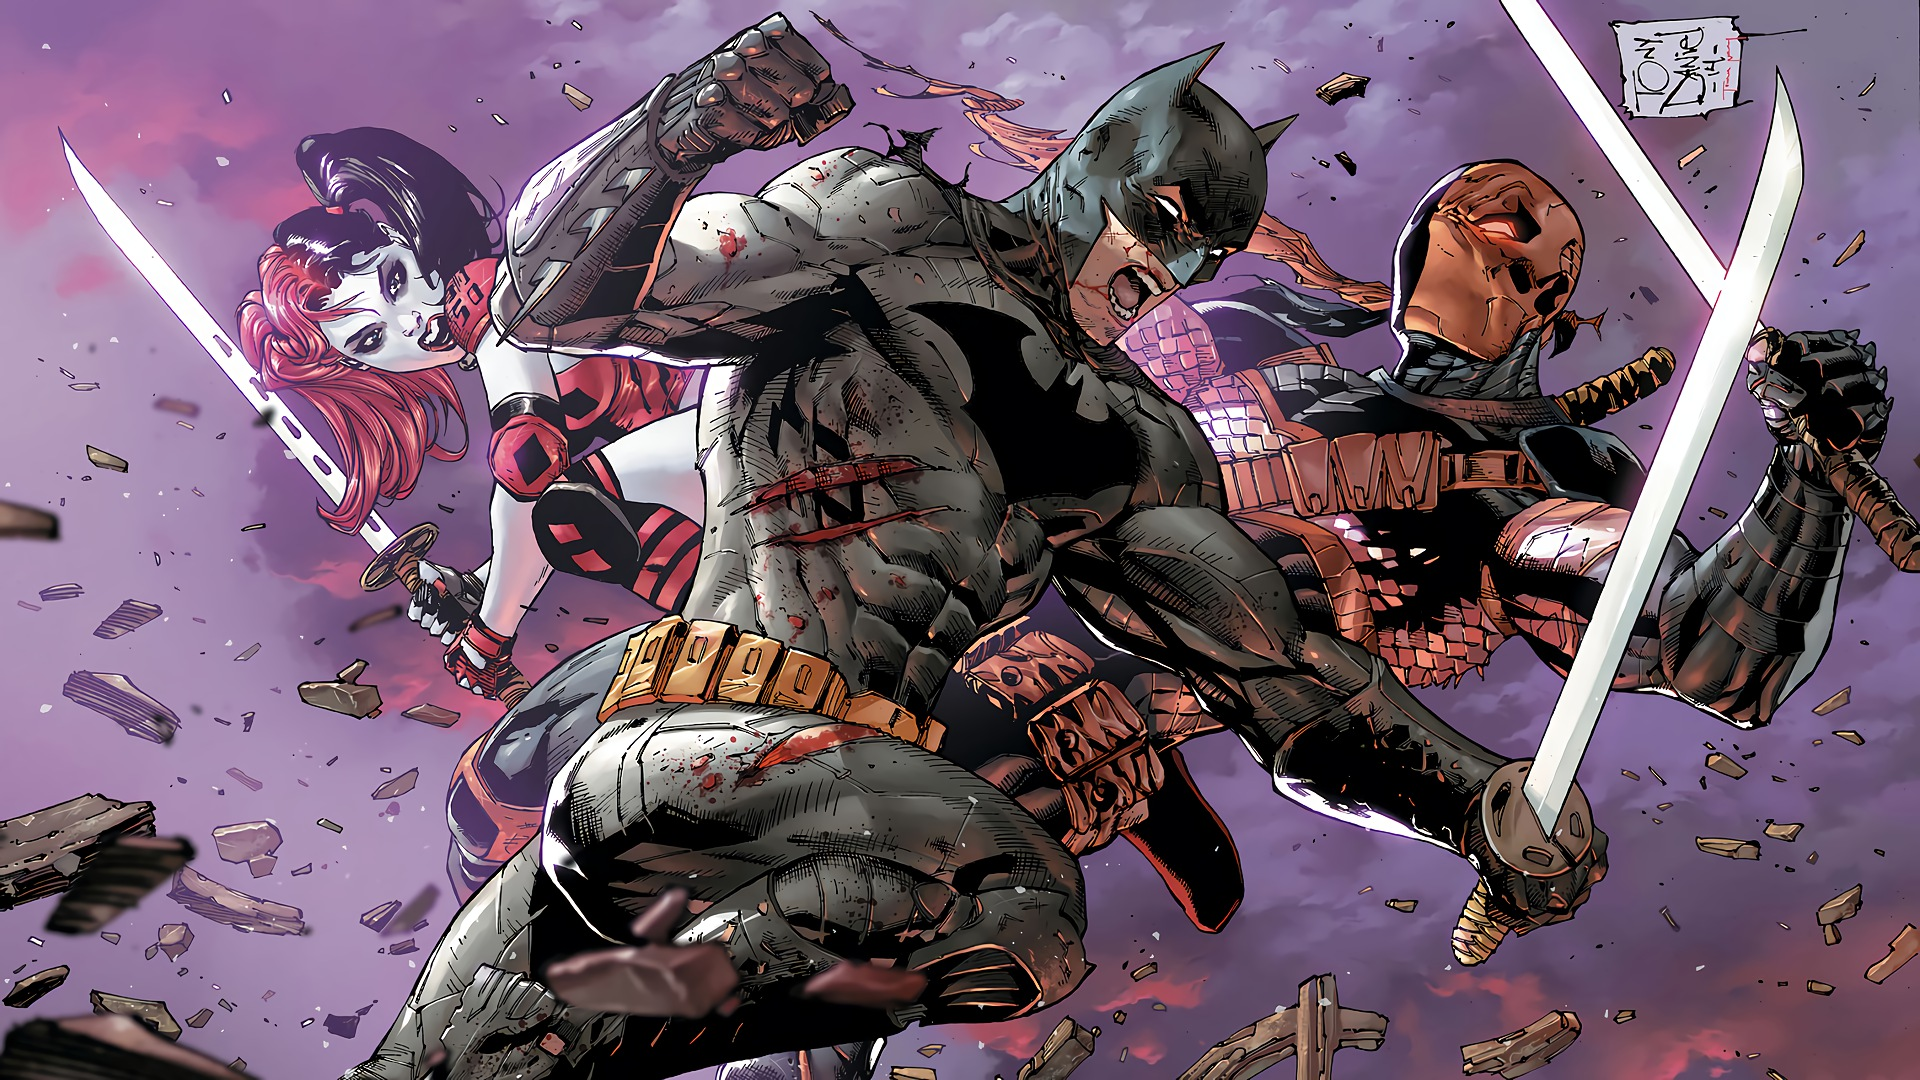 Batman Vs Deathstroke HD Wallpaper